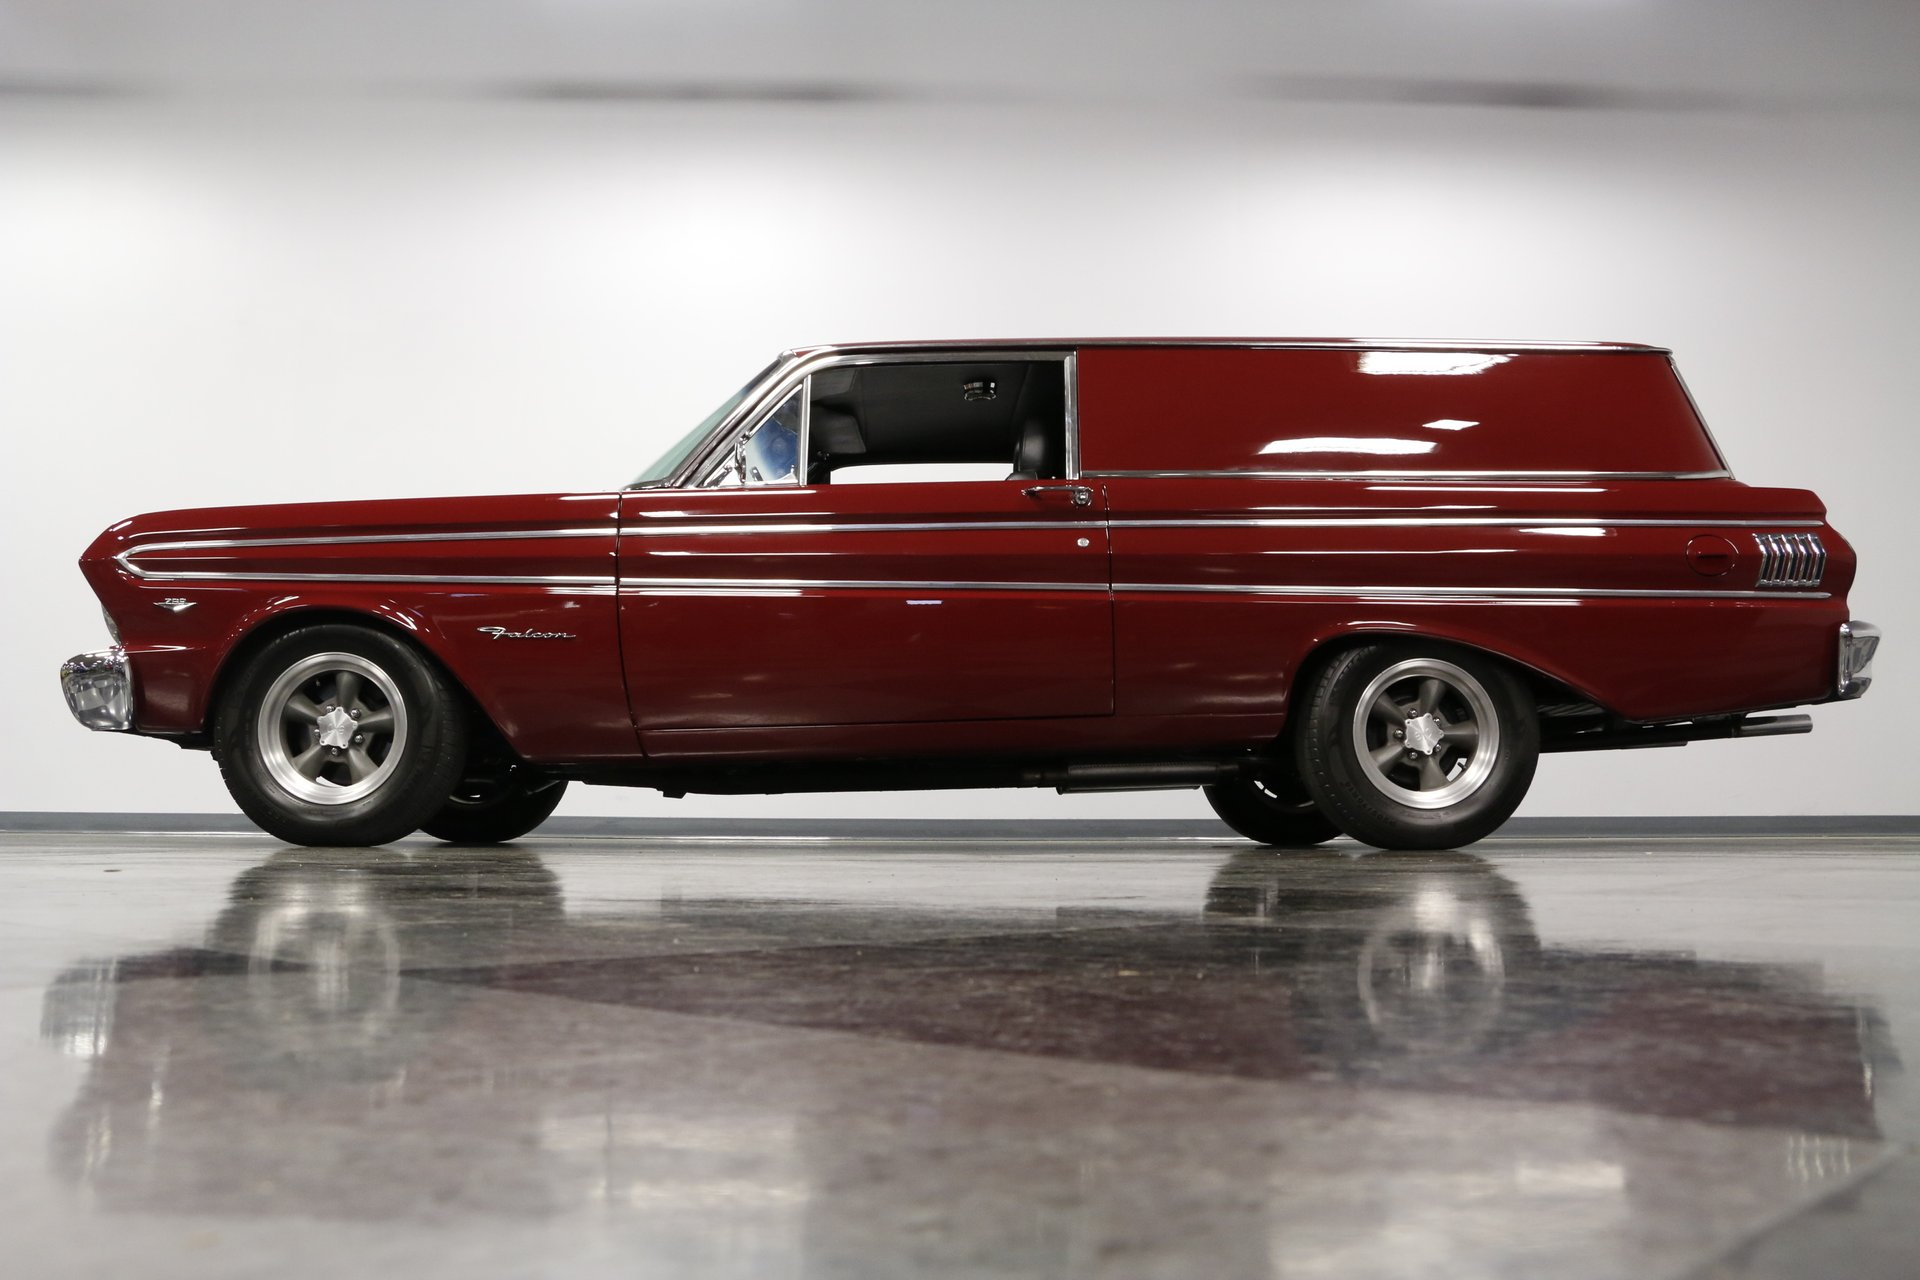 1964 Ford Falcon   Streetside Classics - The Nation's Trusted